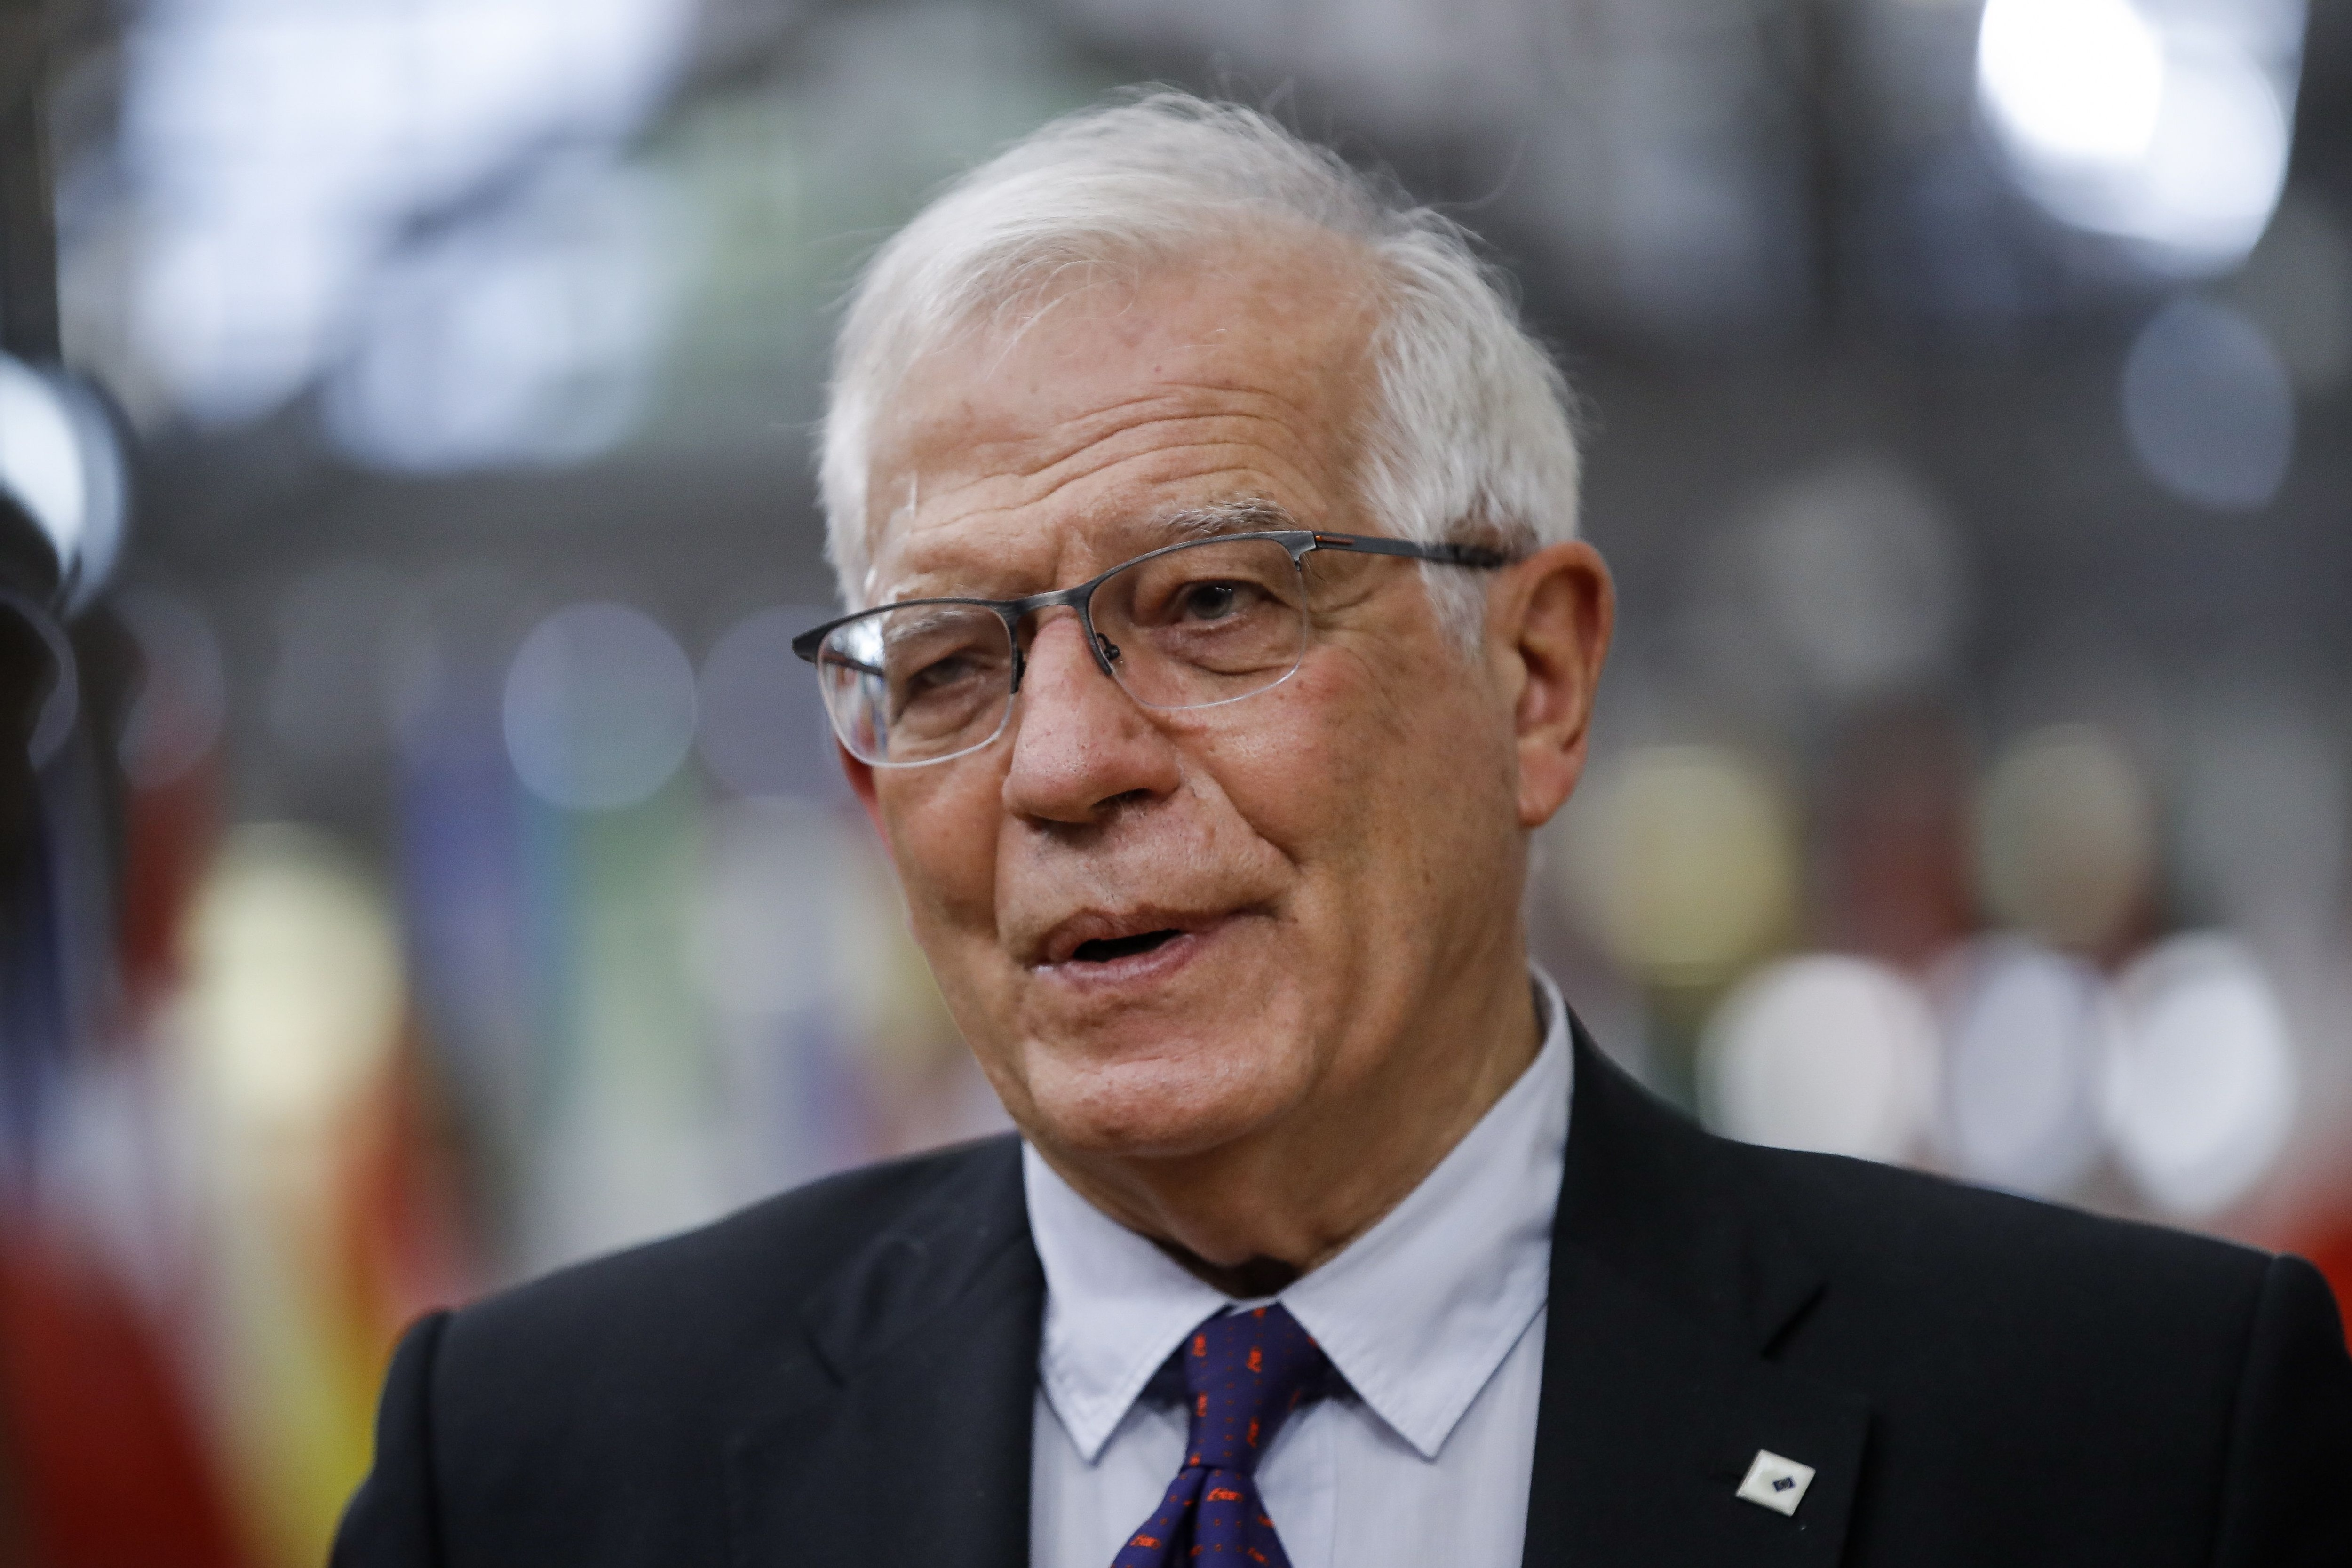 Brussels (Belgium), 24/05/2021.- European Union foreign policy chief Josep Borrell arrives at a special EU summit in Brussels, Belgium, 24 May 2021. EU leaders will discuss foreign policy EFE/EPA/OLIVIER HOSLET / POOL/Archivo